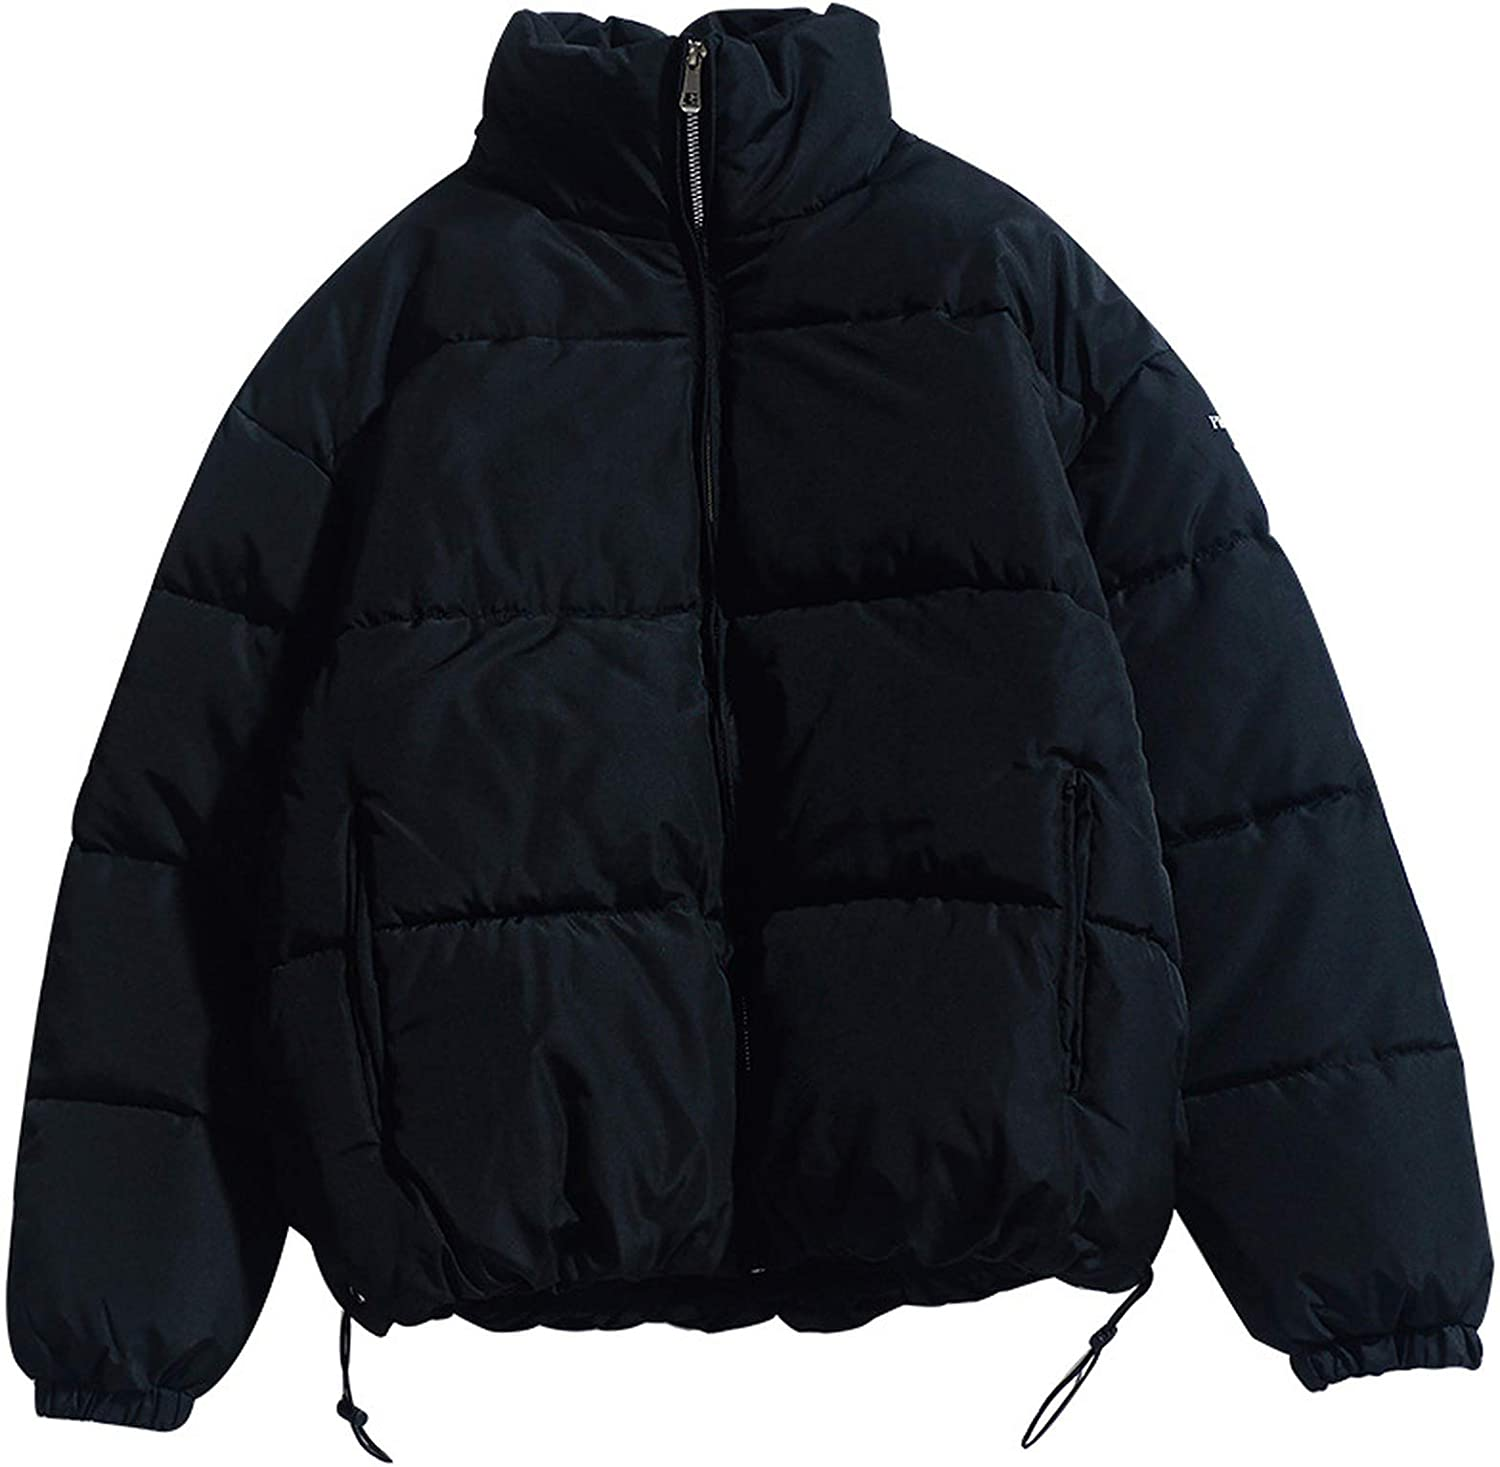 Winter Men Solid Color Parkas Stand Warm Thick Jacket Discount mail order Rare Collar Mal